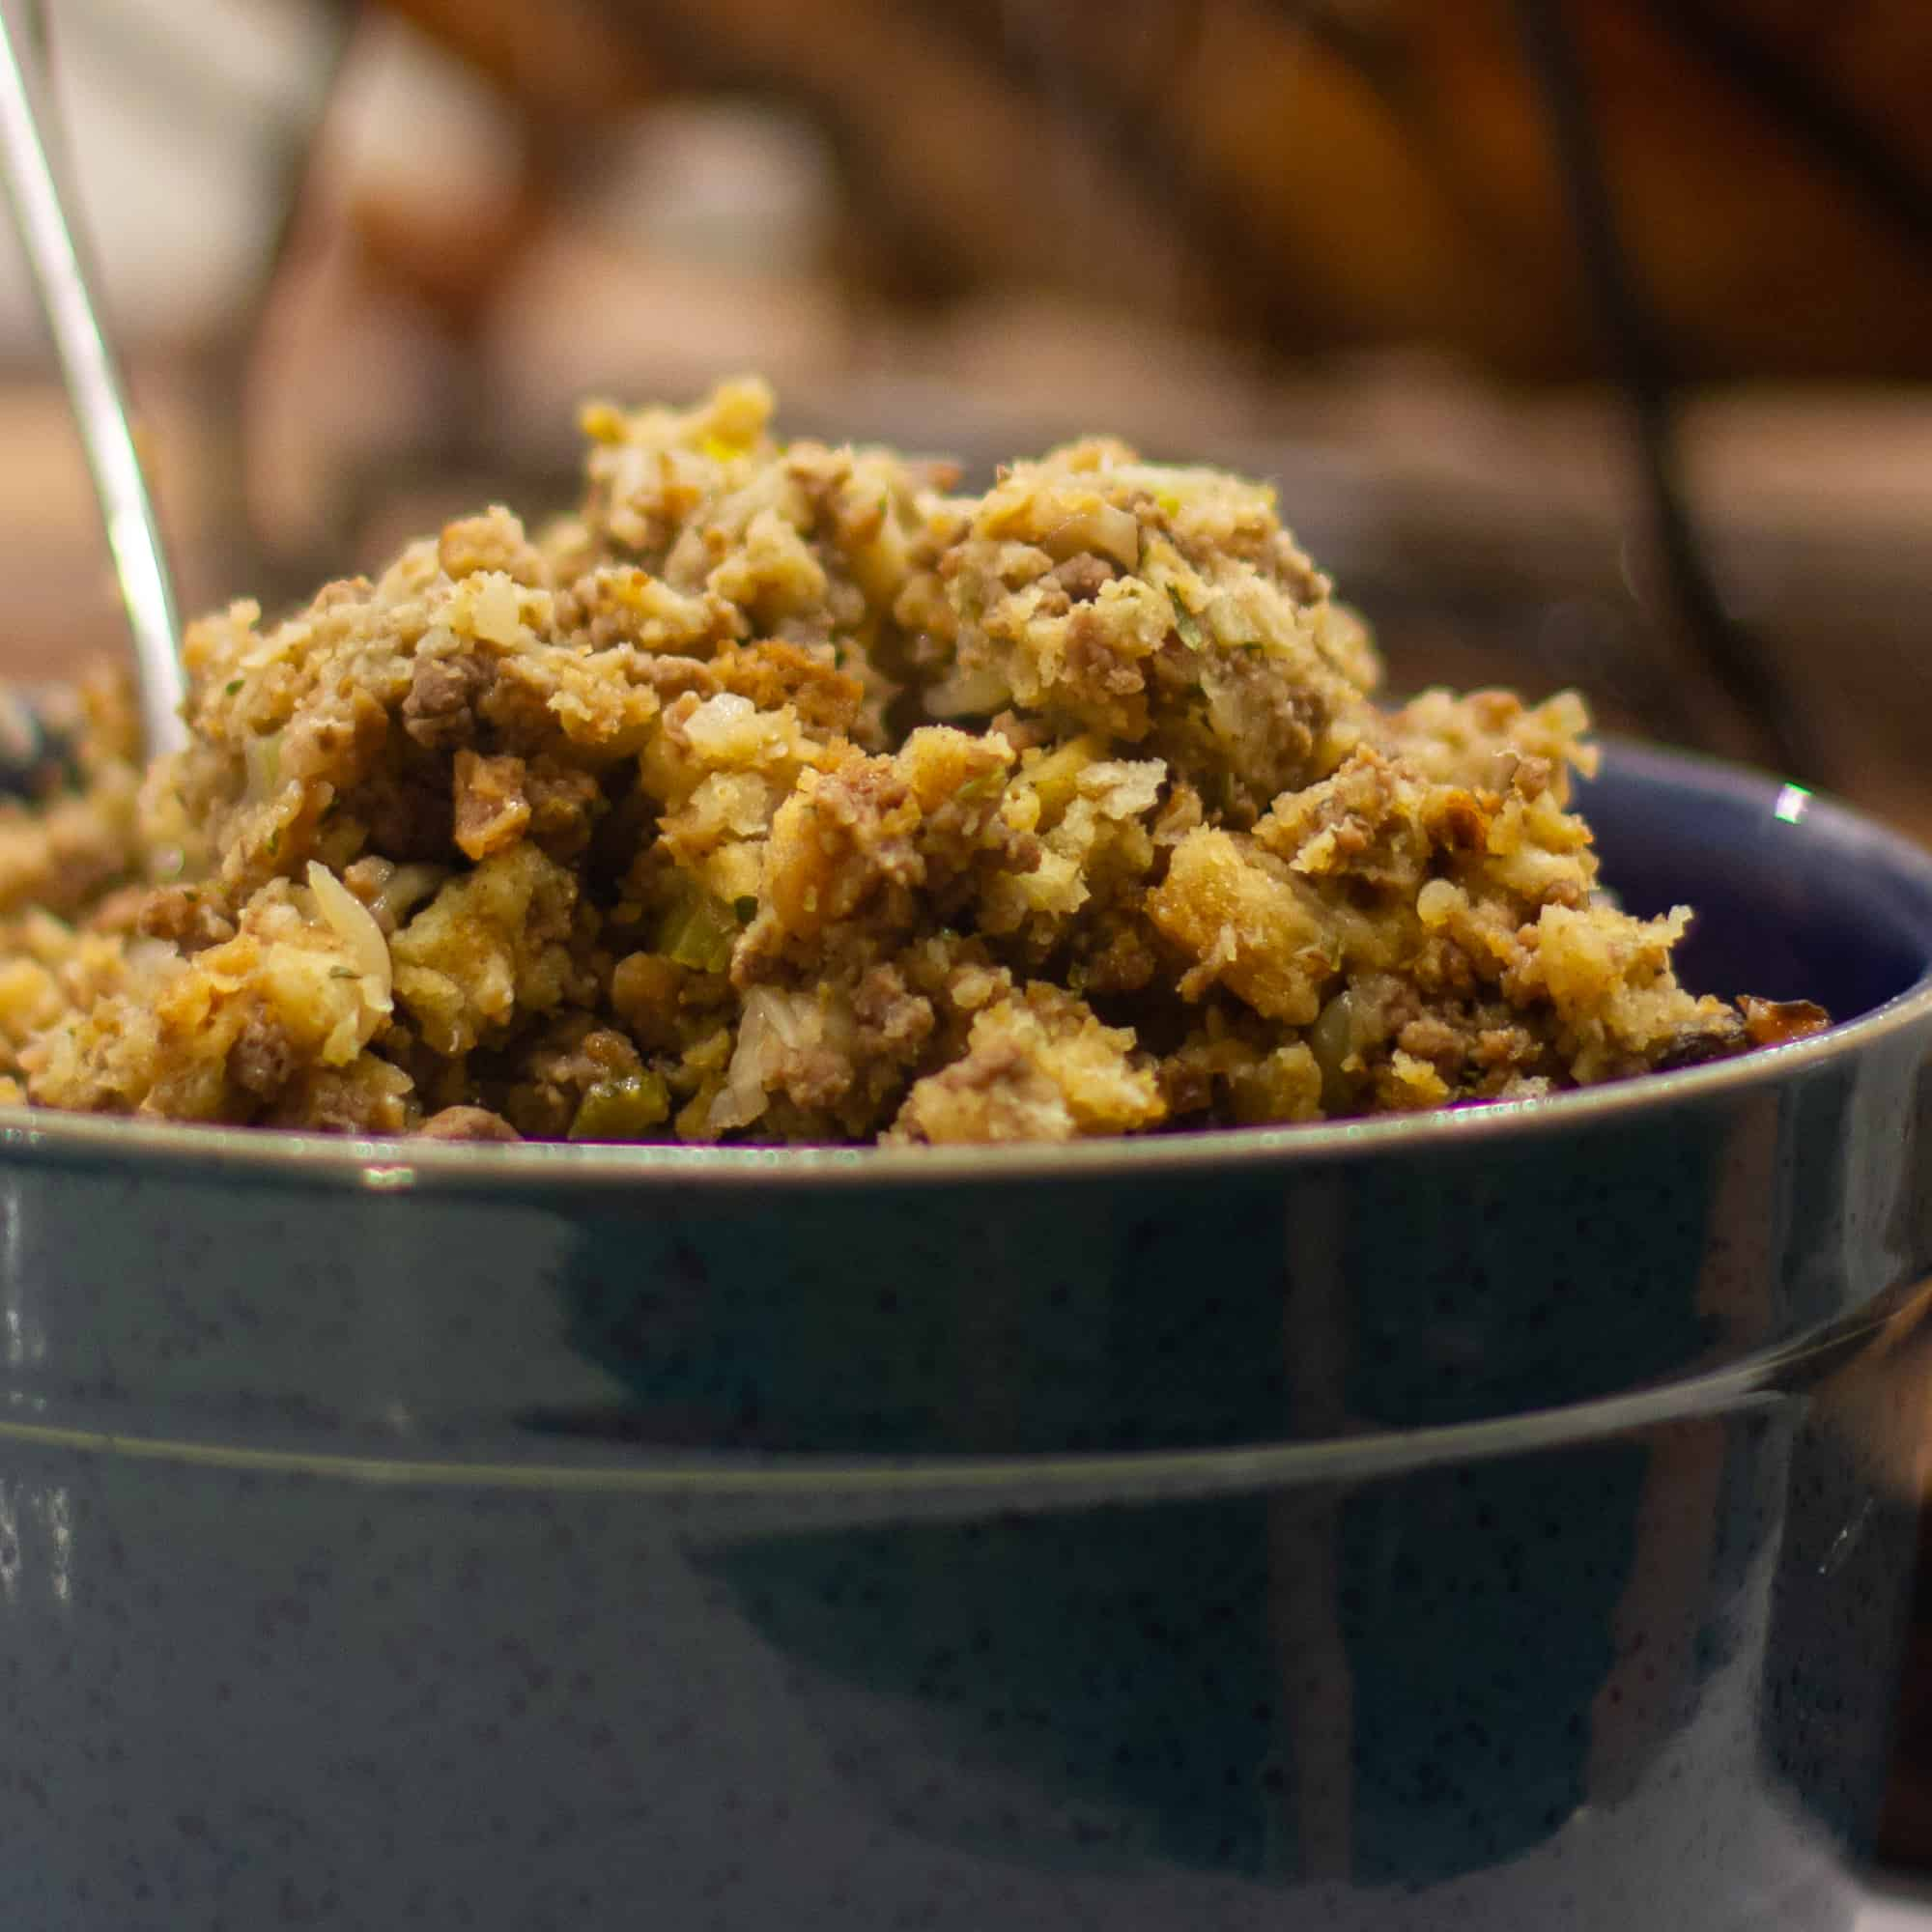 Scoop the stuffing out of the turkey and spoon into a bowl